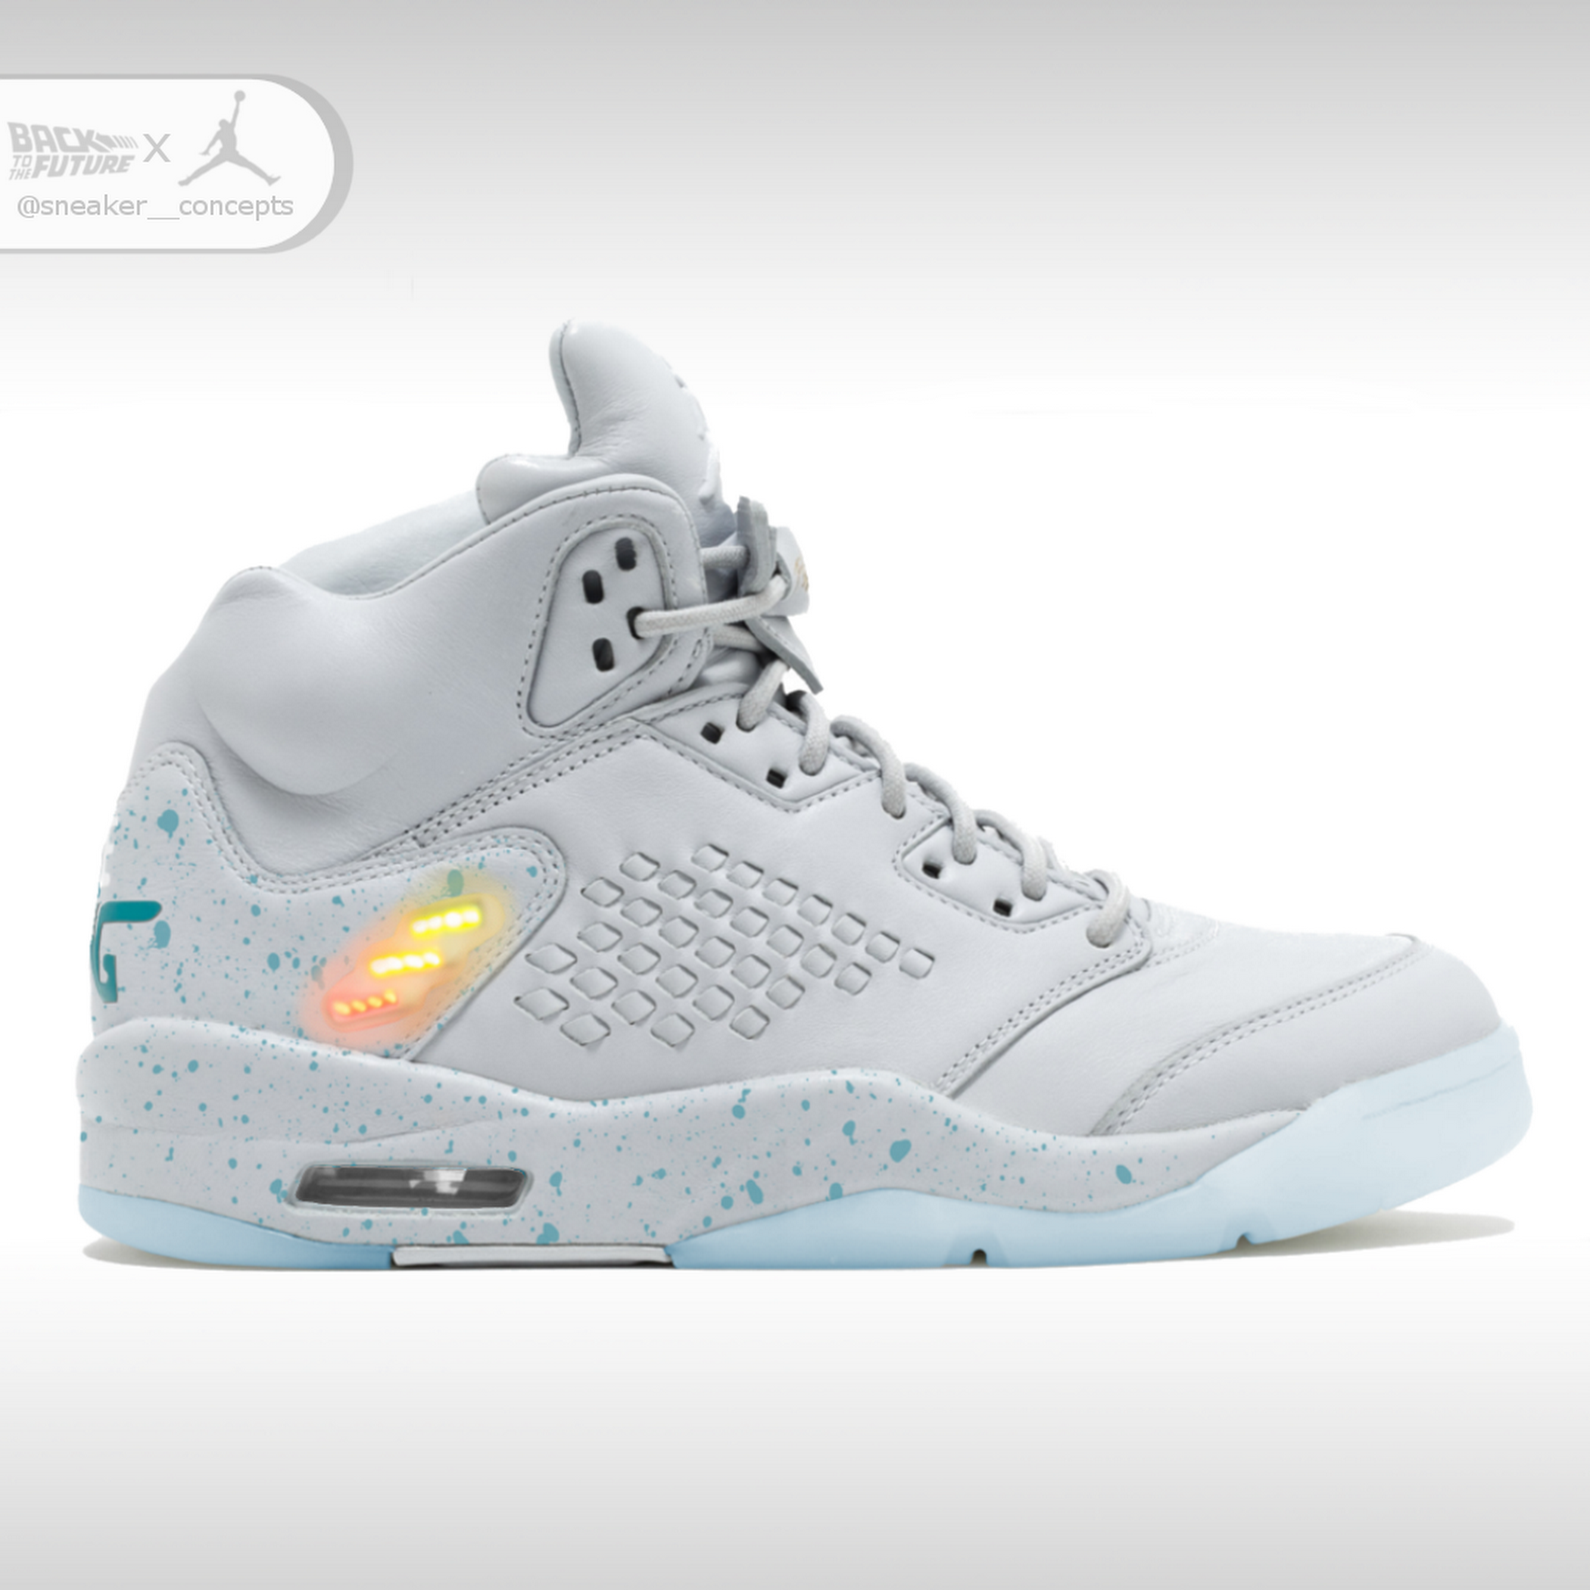 827ea3e96402 Air Mag inspired Jordan 5 - Sneaker Concepts